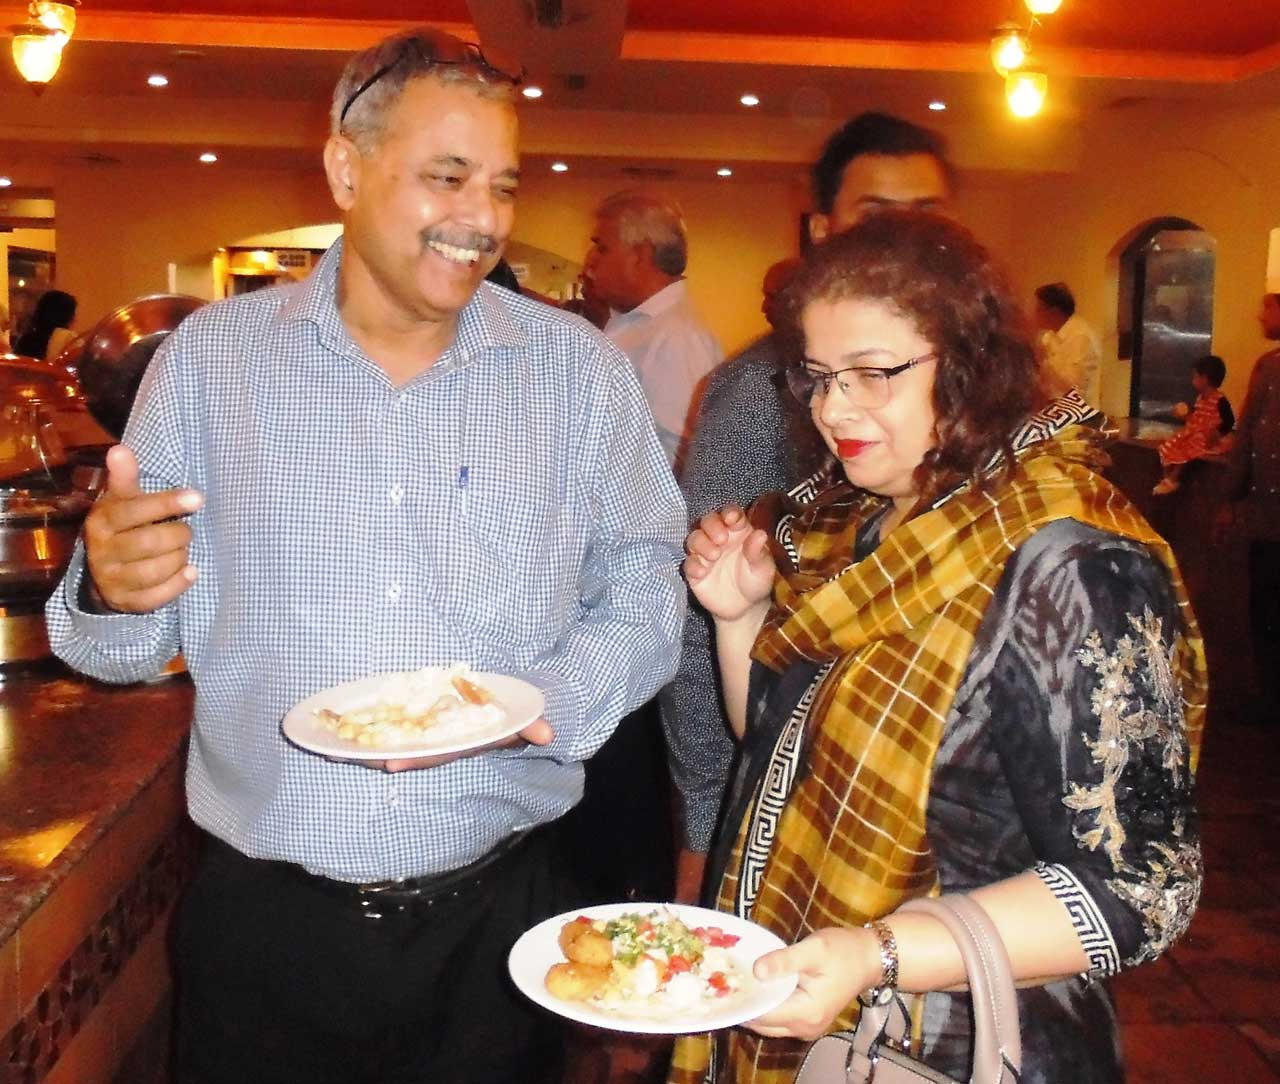 Arif Qamar and his wife are enjoying the food